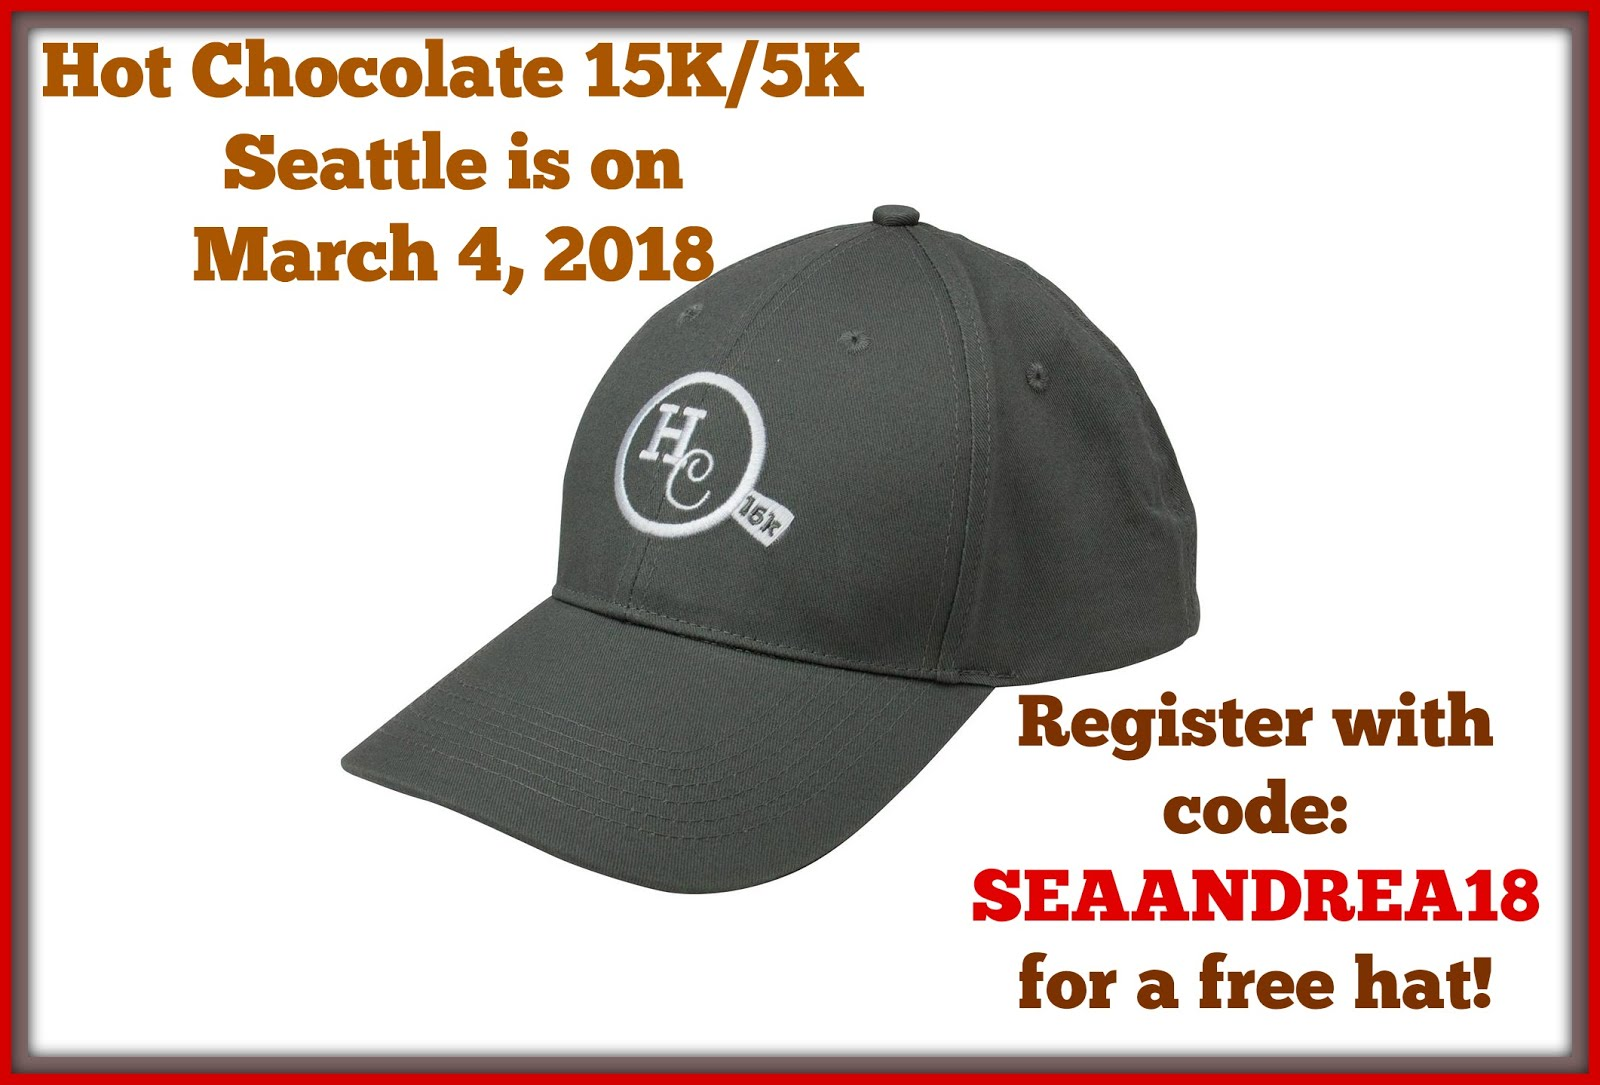 Hot Chocolate 15K/5K March 4, 2018